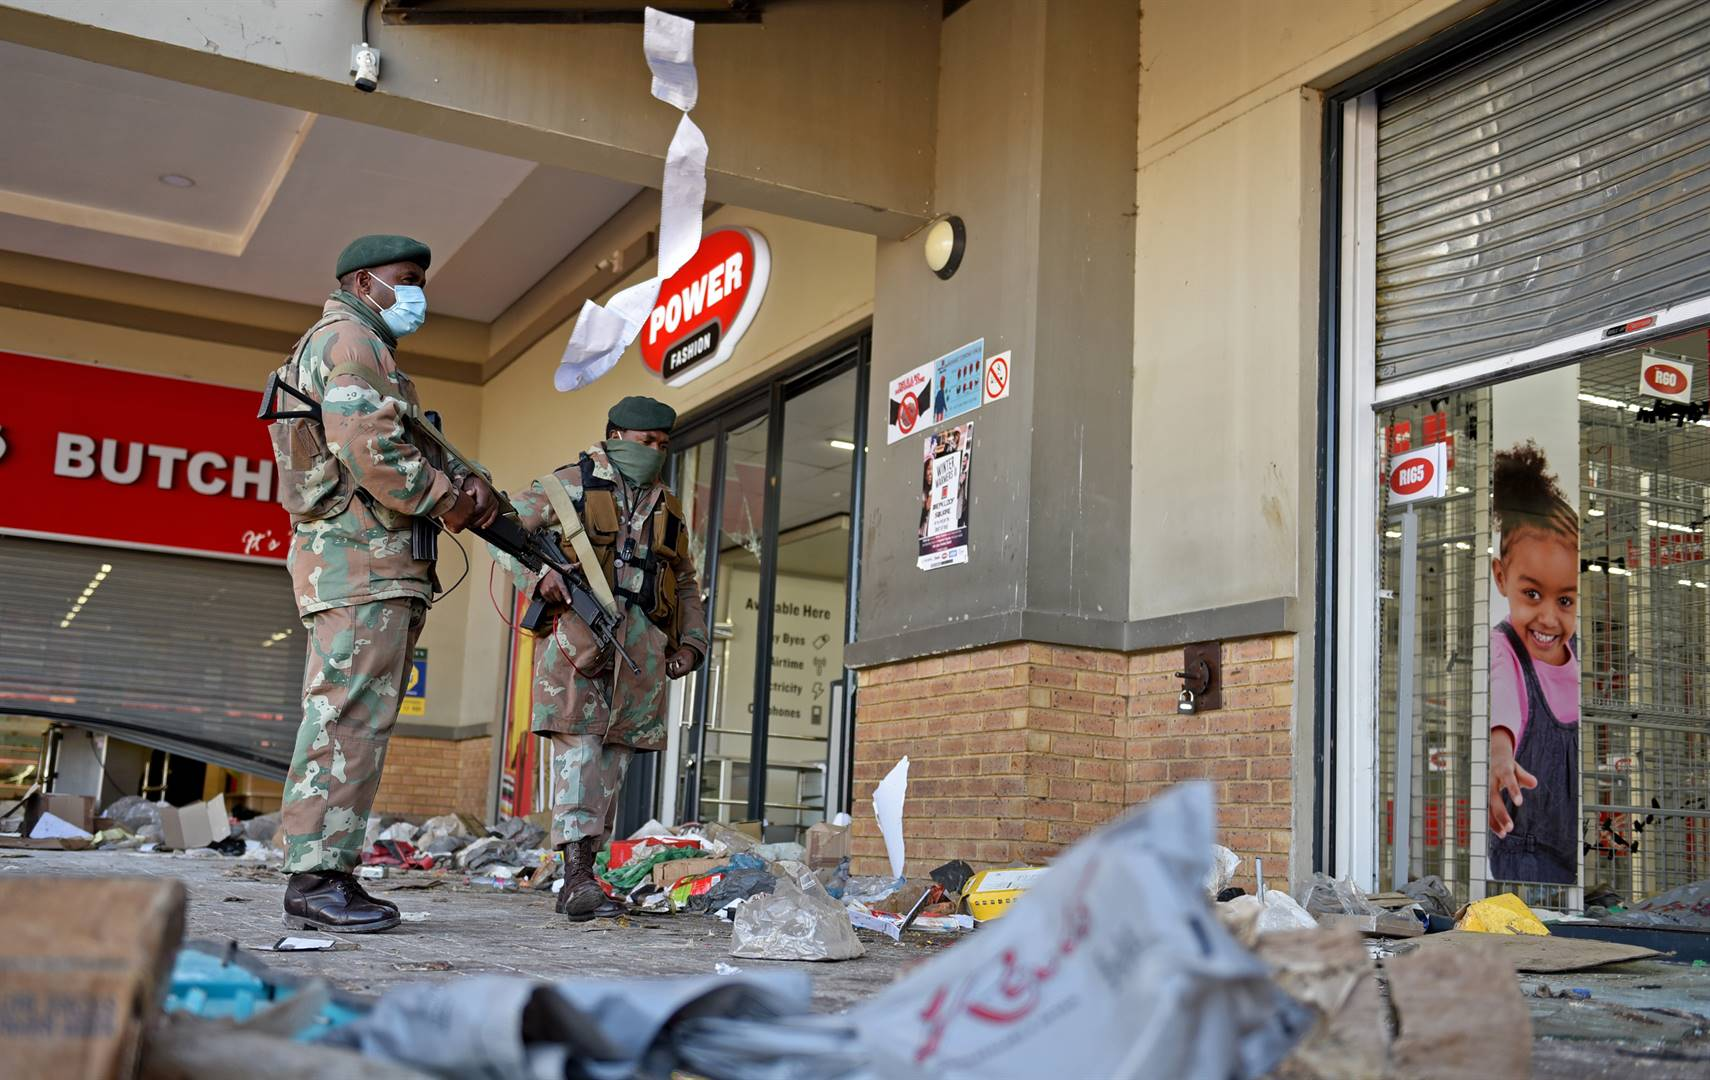 Soldiers patrol the looted and vandalized Diepkloof Square in Soweto. Photo: Tebogo Letsie/City Press